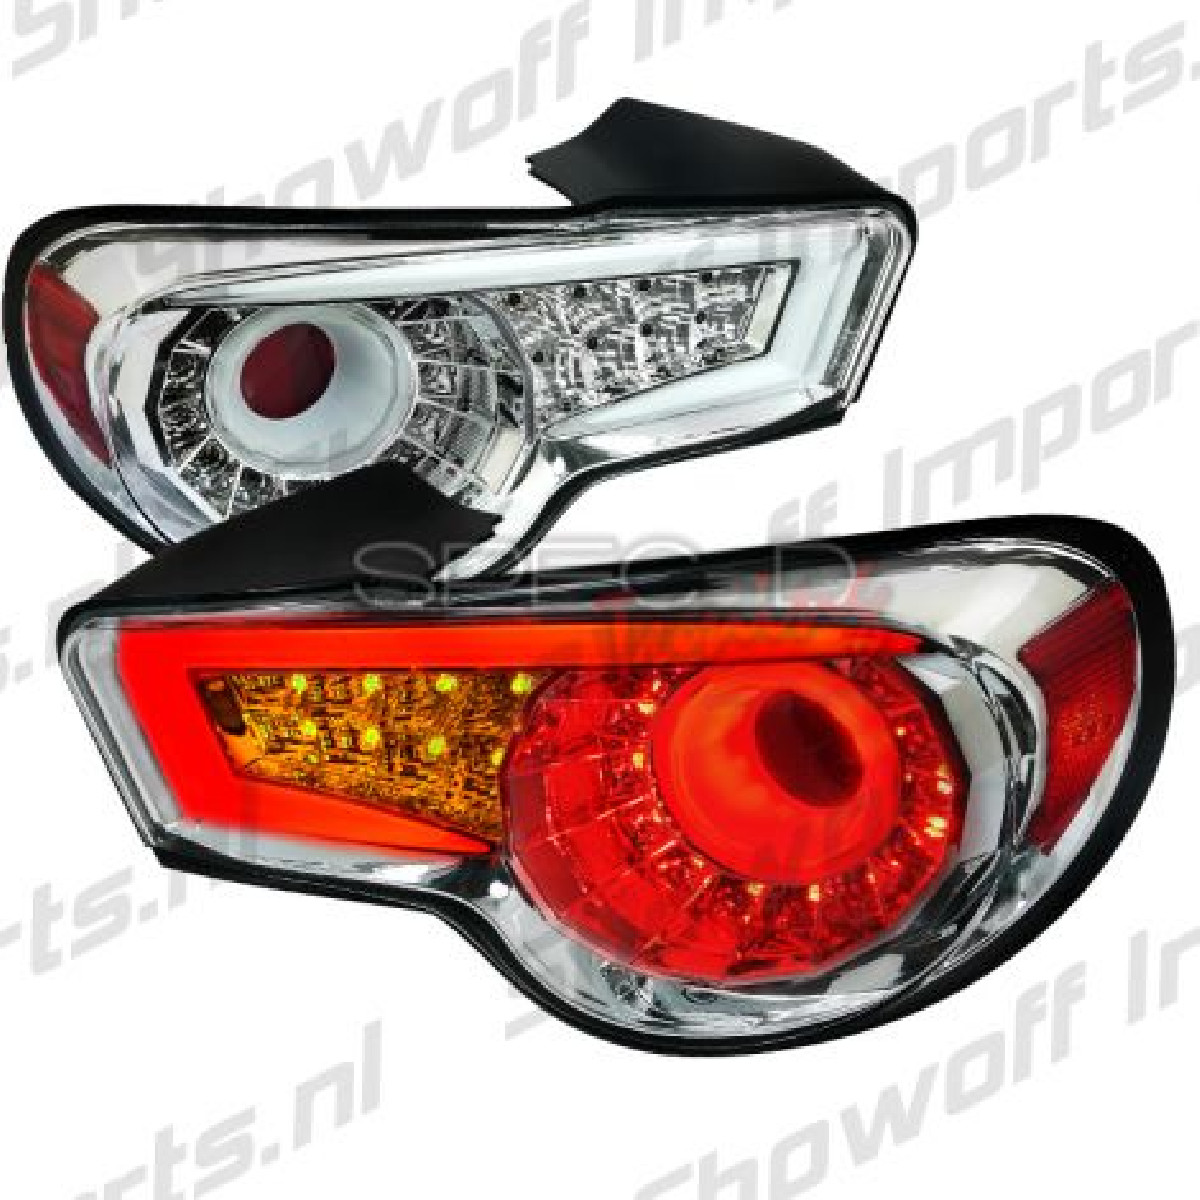 Subaru BRZ Chrome/Clear LED Taillights [SR]